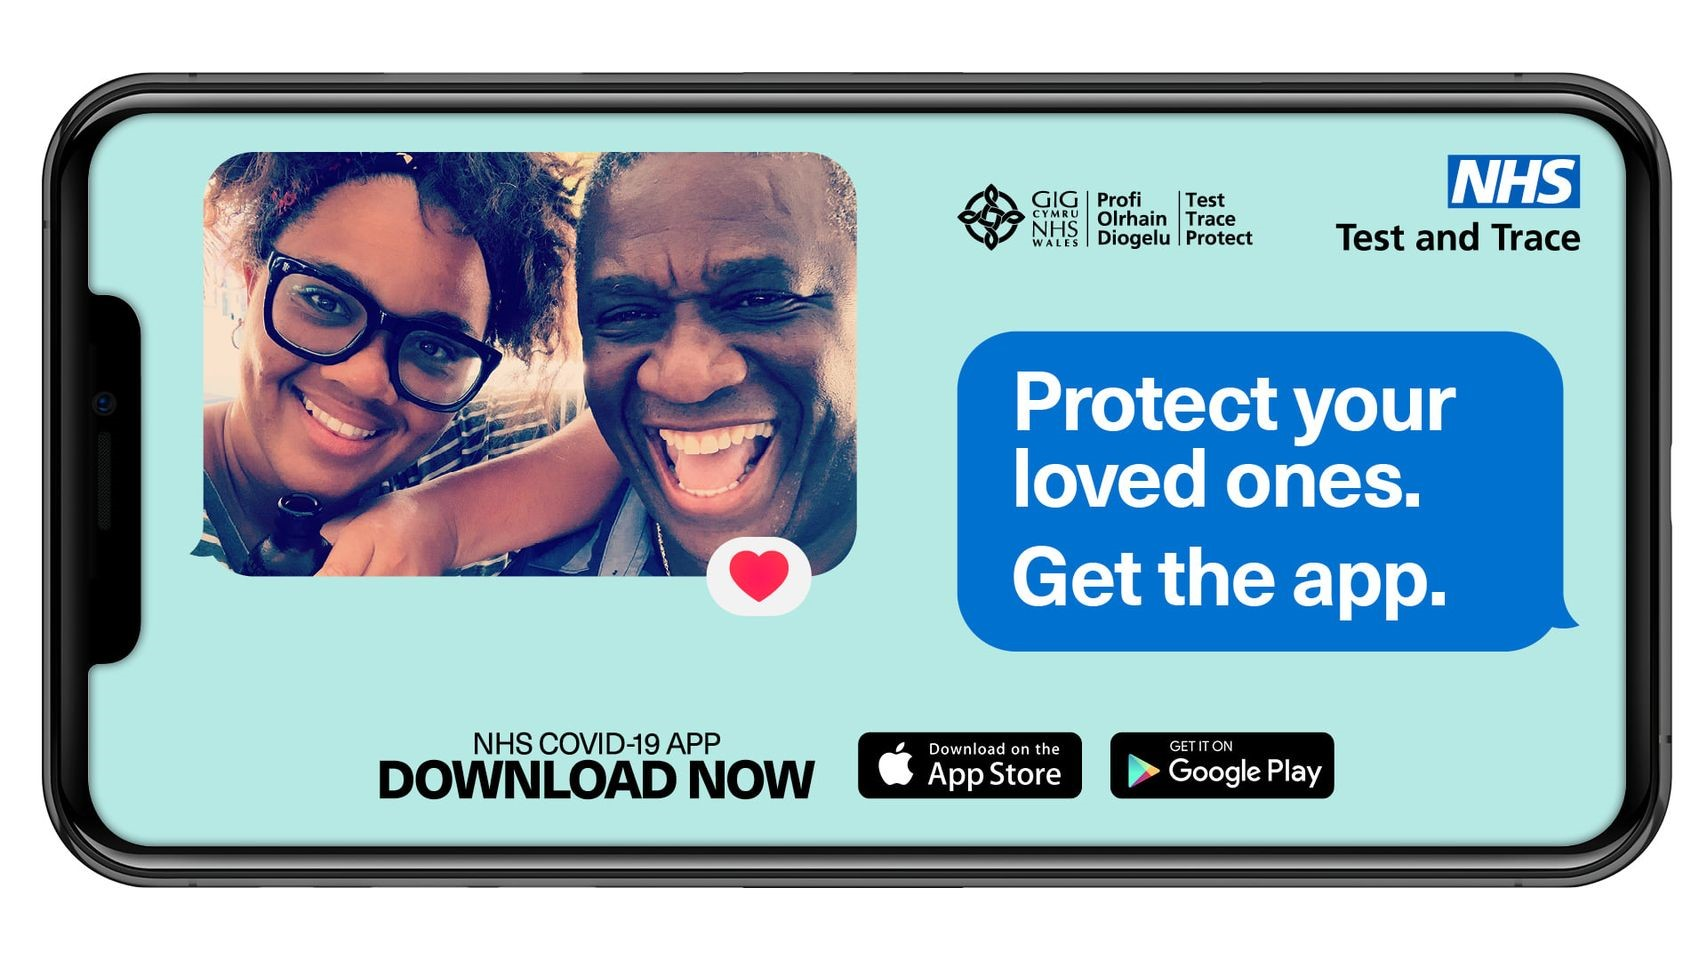 Protect your loved ones, get the Covid 19 app